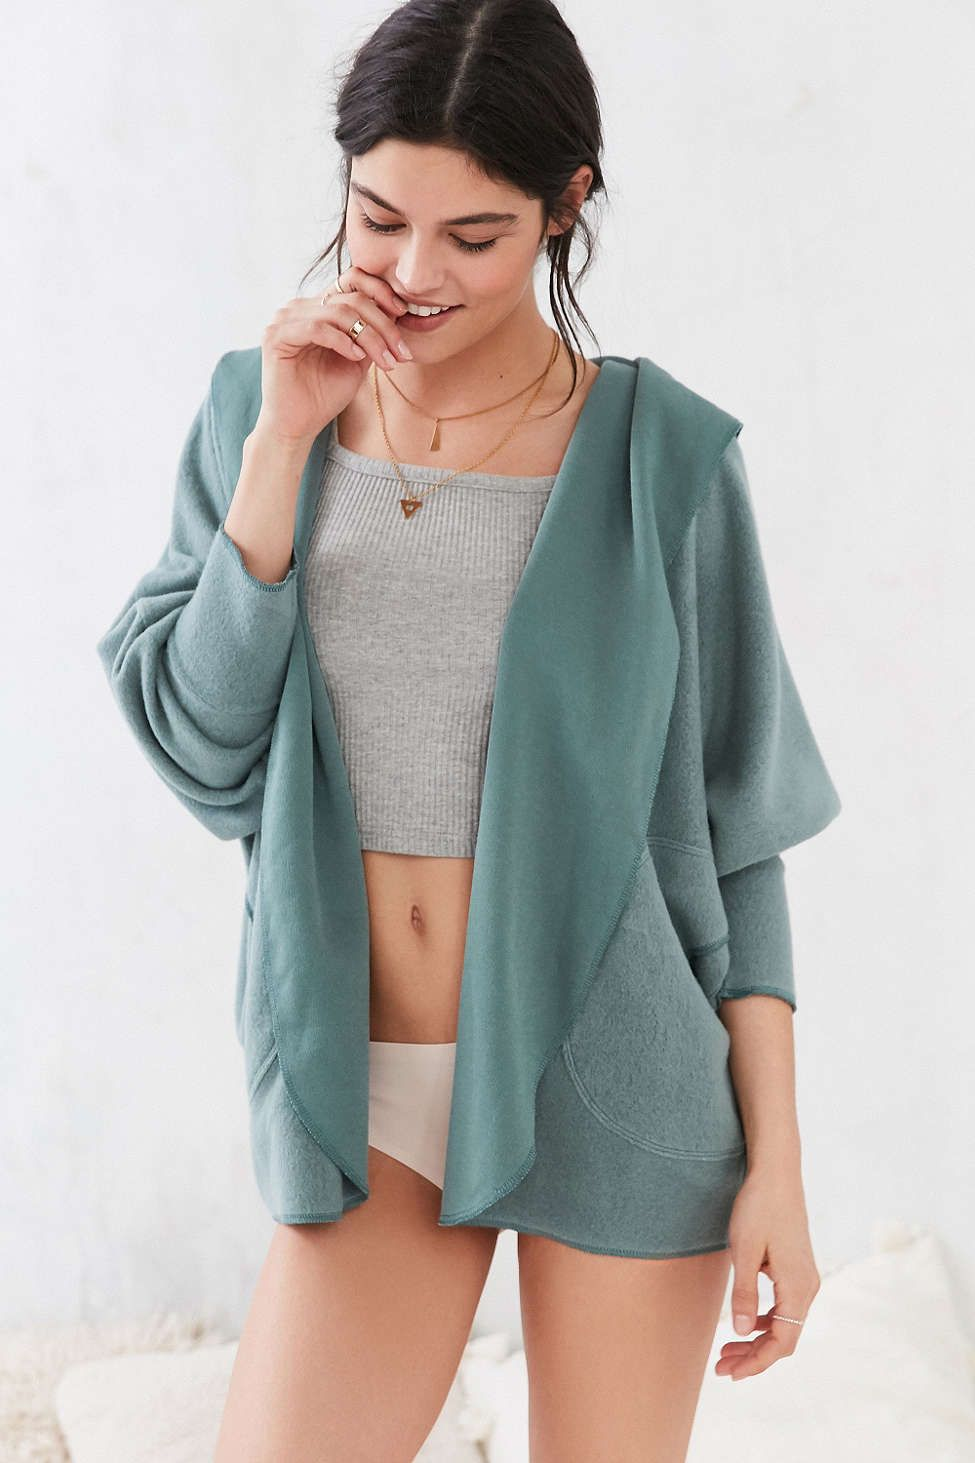 Silence   Noise Seoul Cozy Hooded Cardigan - Urban Outfitters ...